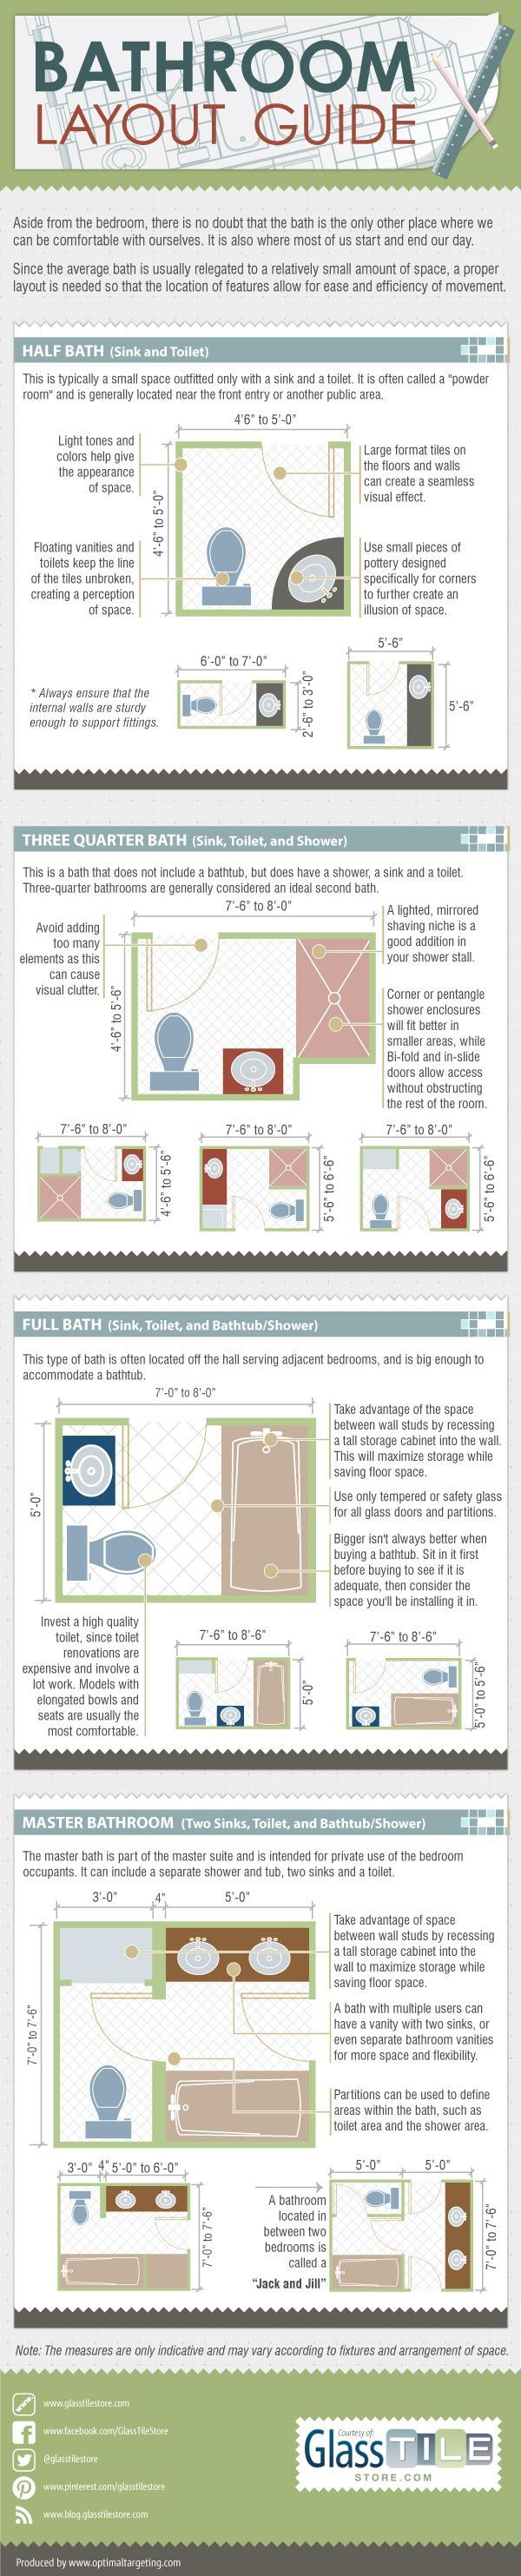 Bathroom layout dimensions - Helpful Bathroom Layout Guide